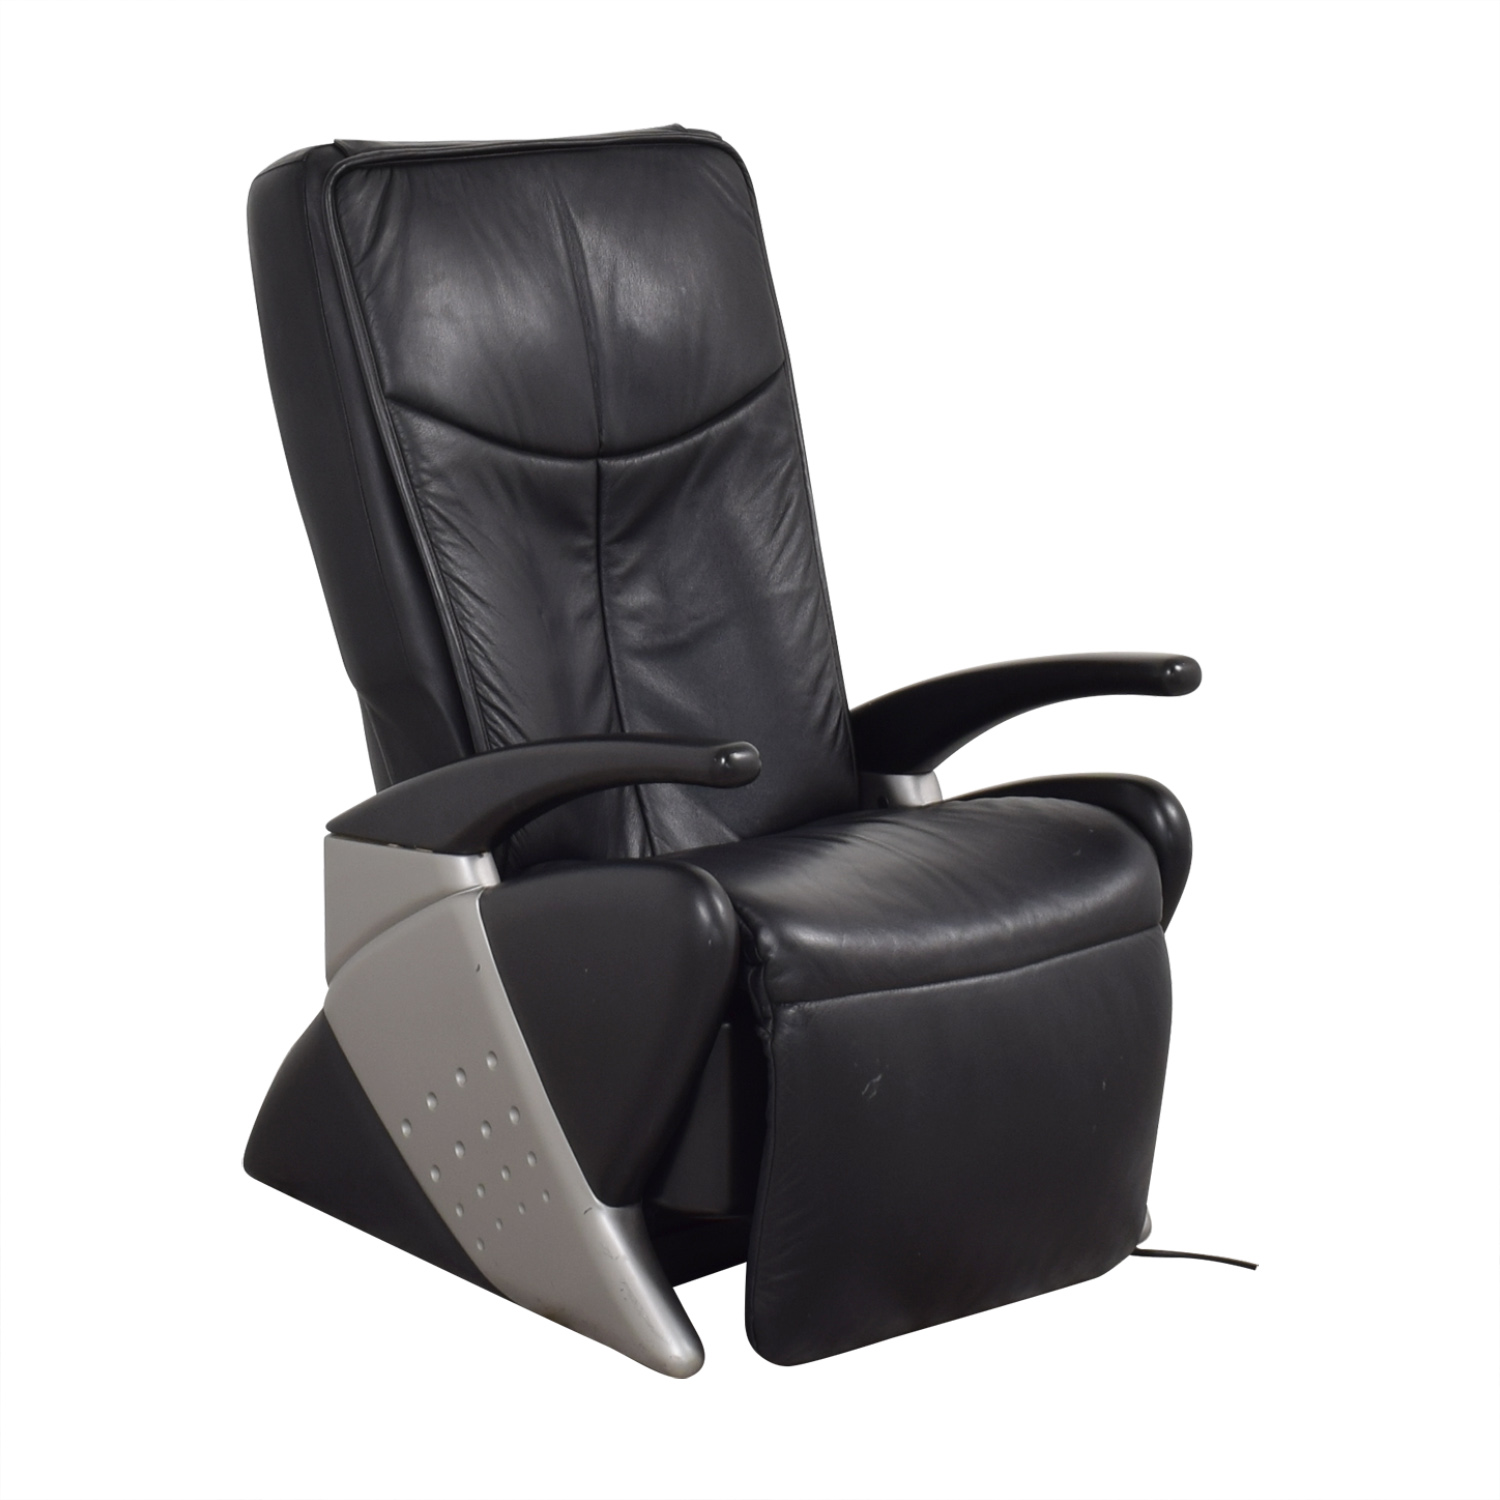 Euro Keyton Massage Chair